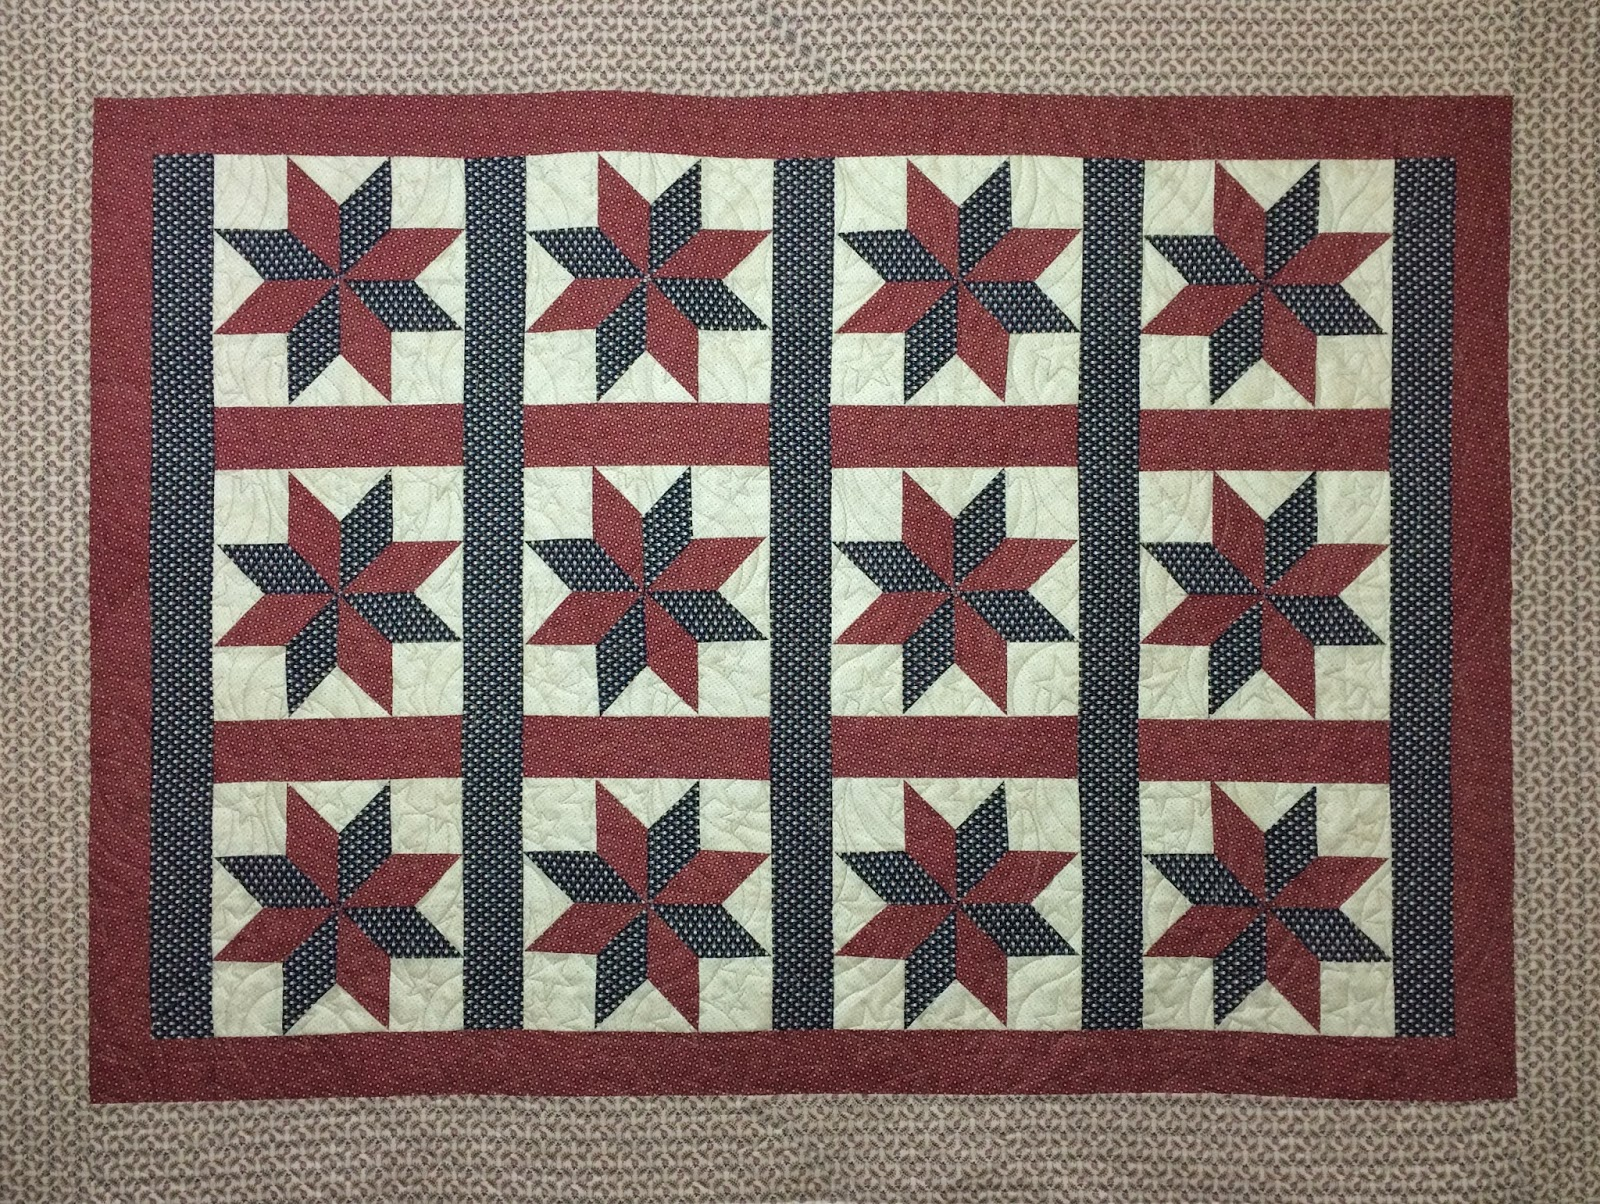 Leanne Strum Civil War Star Quilt